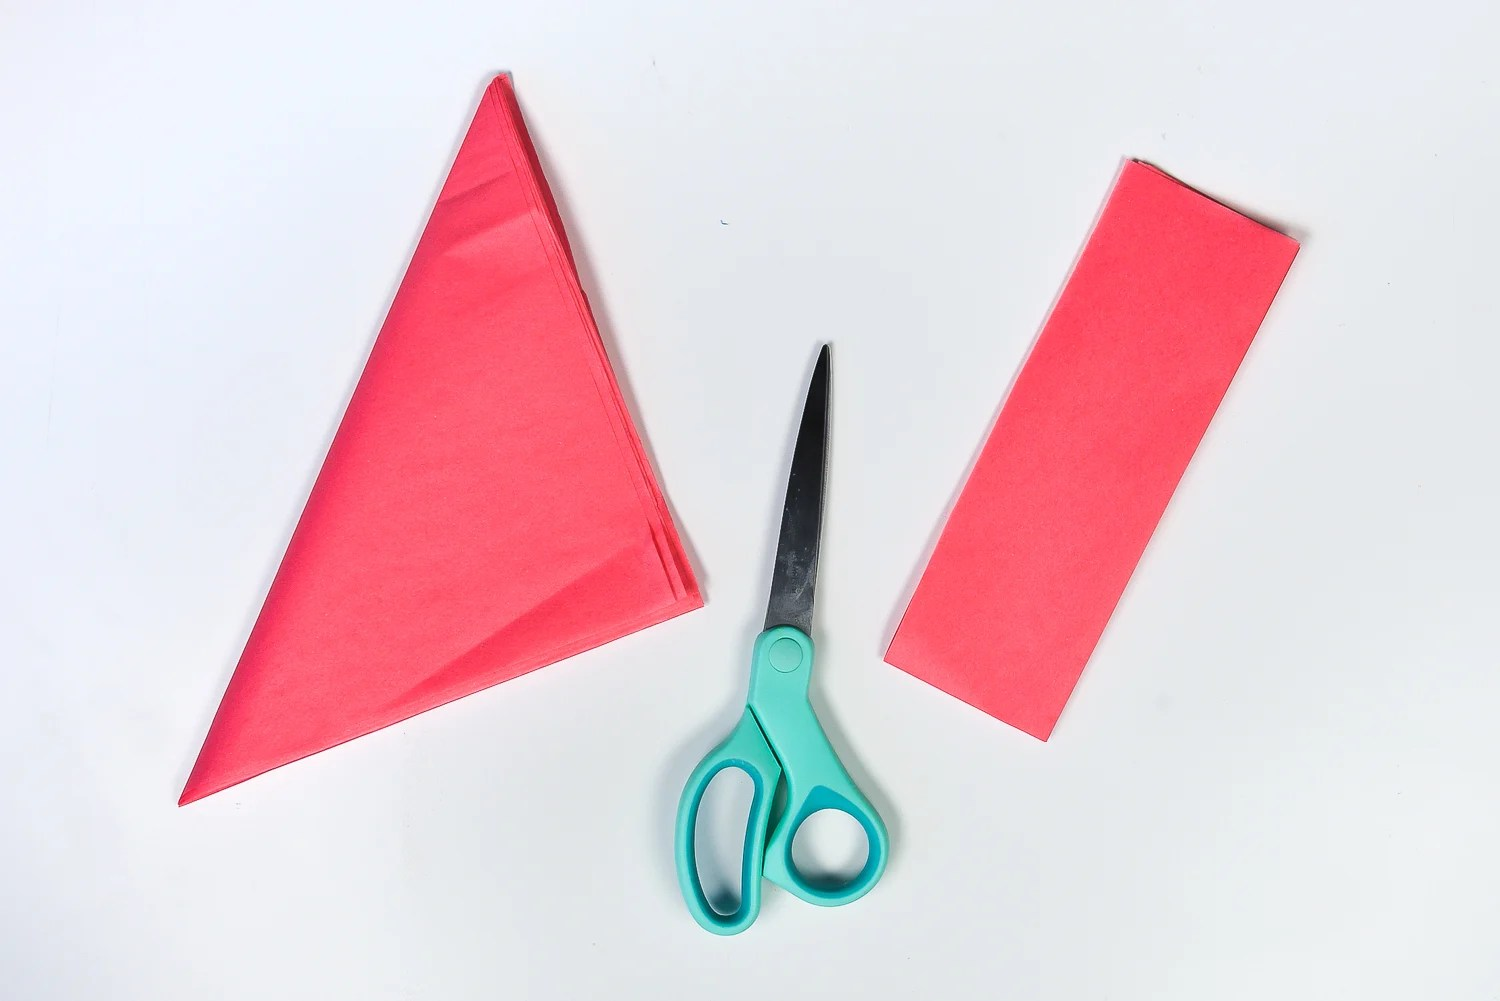 How to Make Tissue Paper Flowers: Cut off the extra part of the folded piece of tissue paper